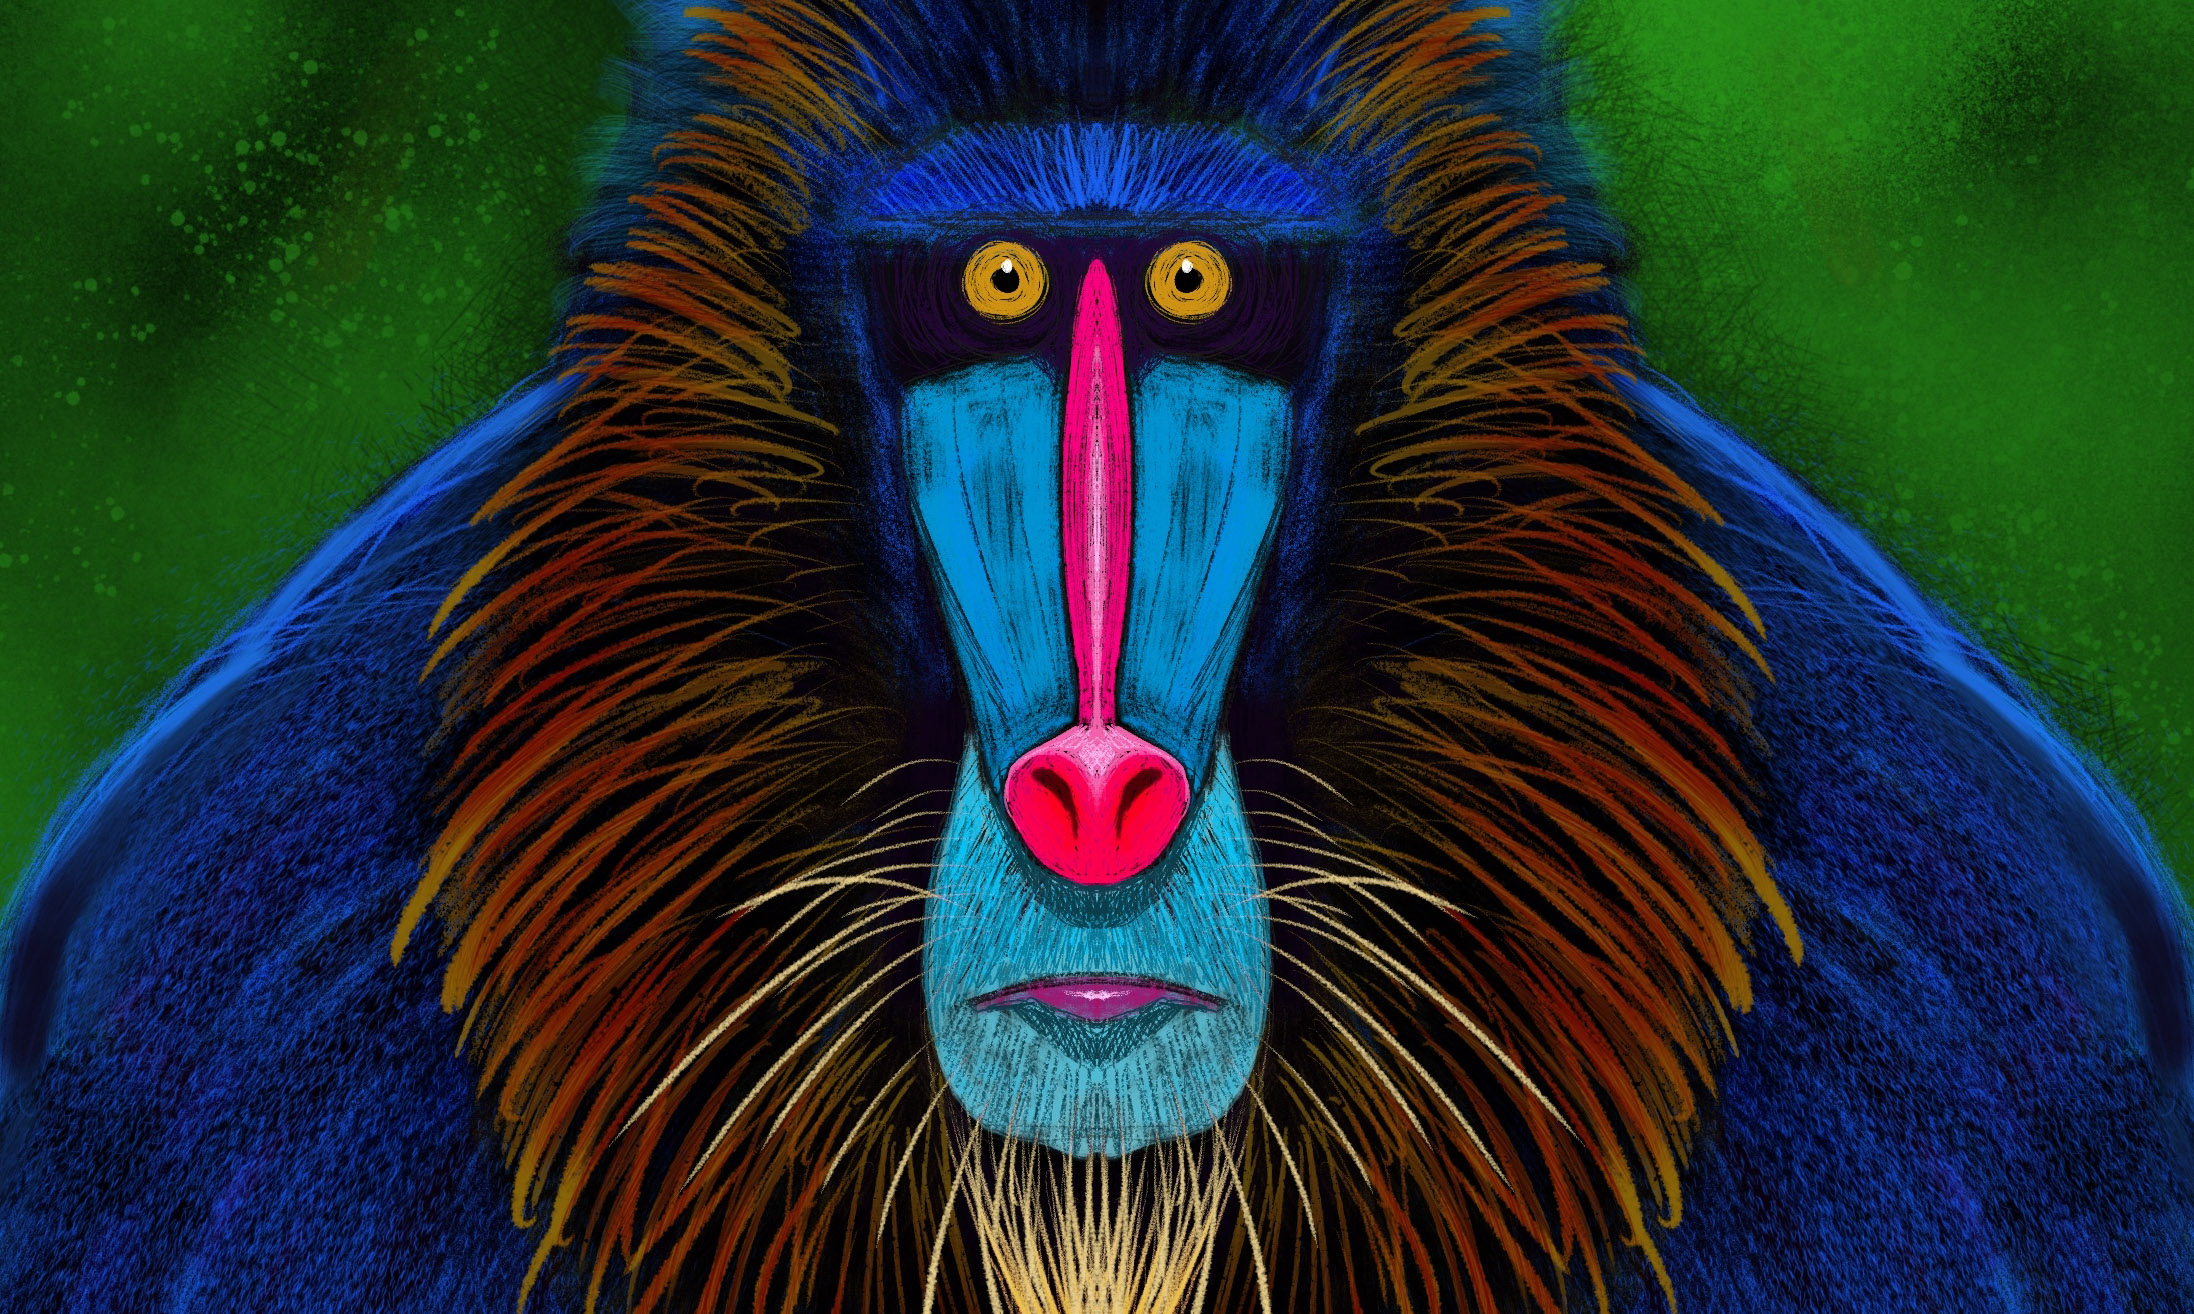 Symmetricanimals – Mandrill